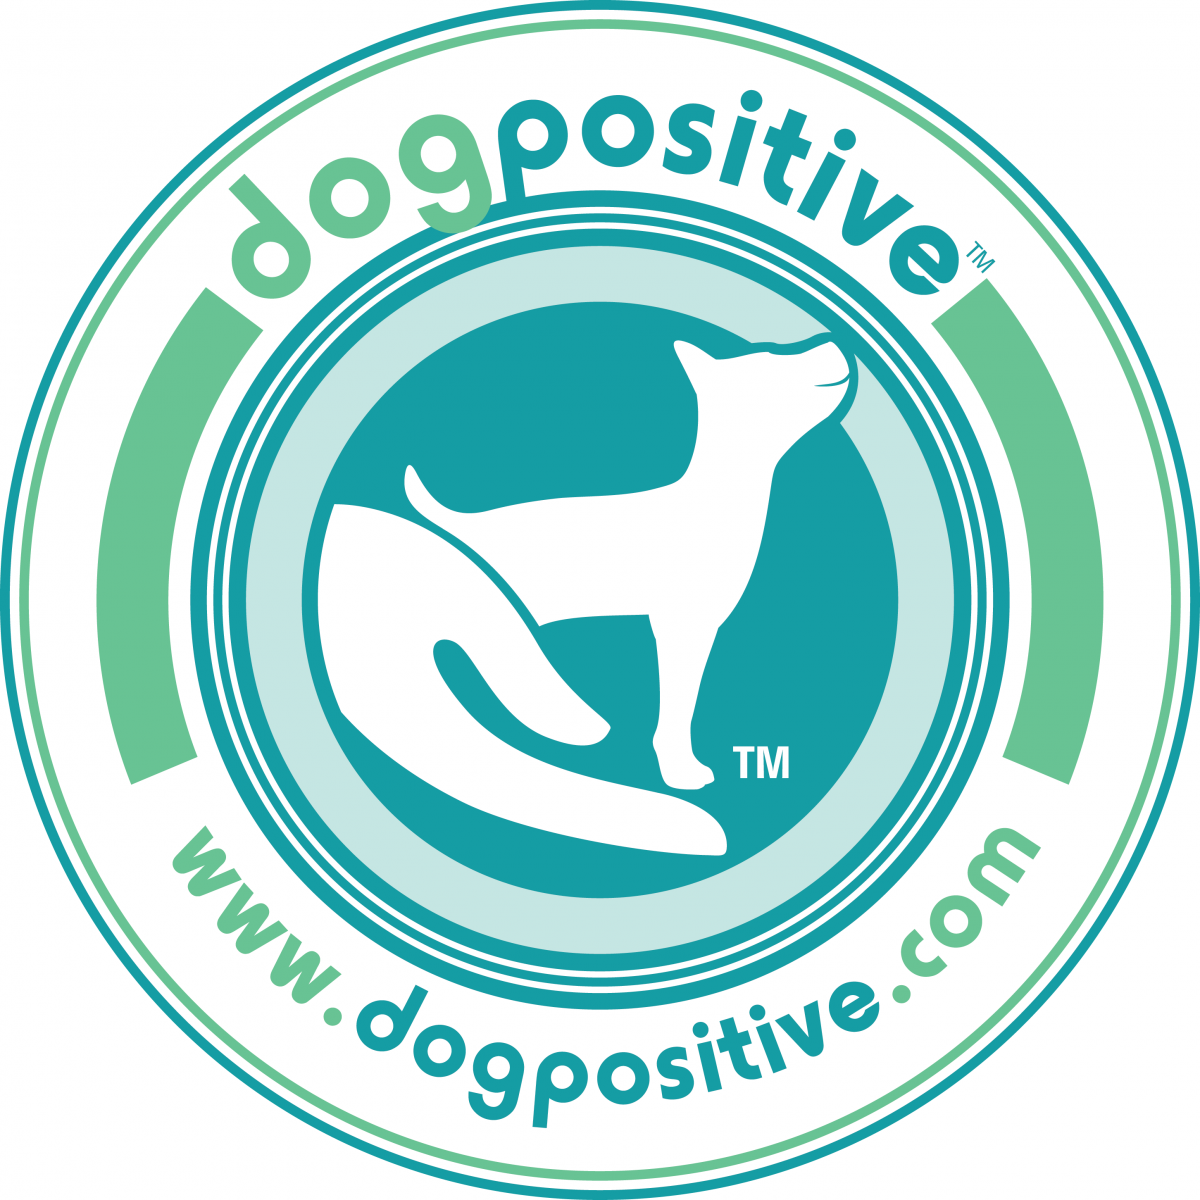 dogpositivedecal_500.png